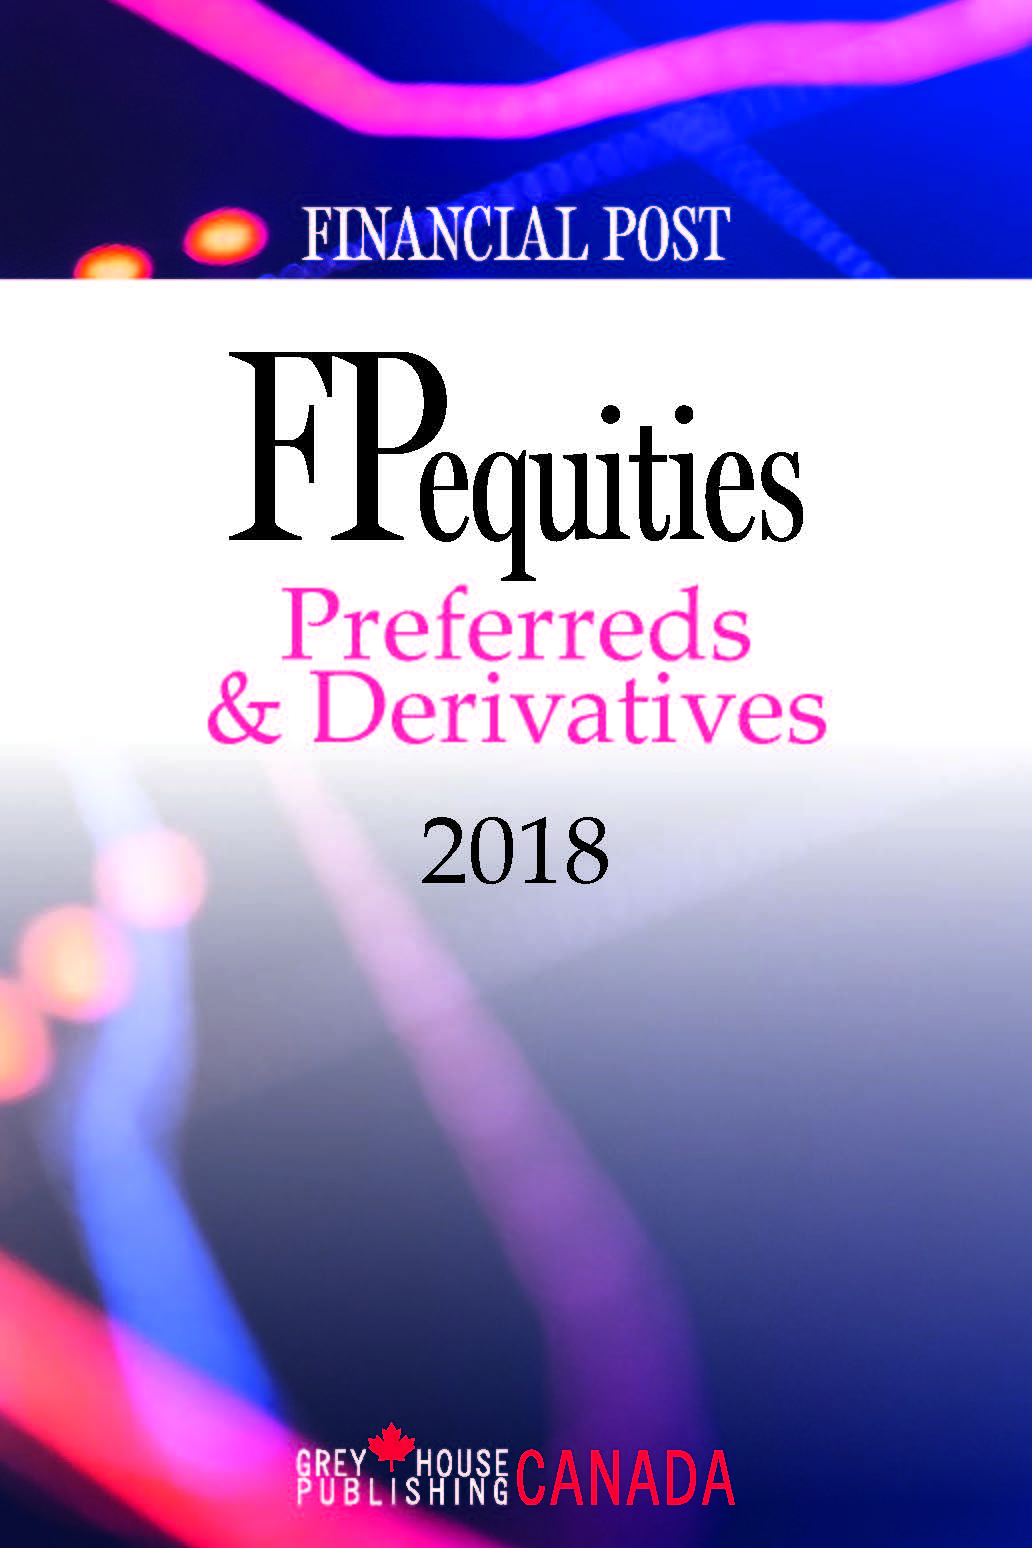 FP Equities: Preferreds & Derivatives 2018